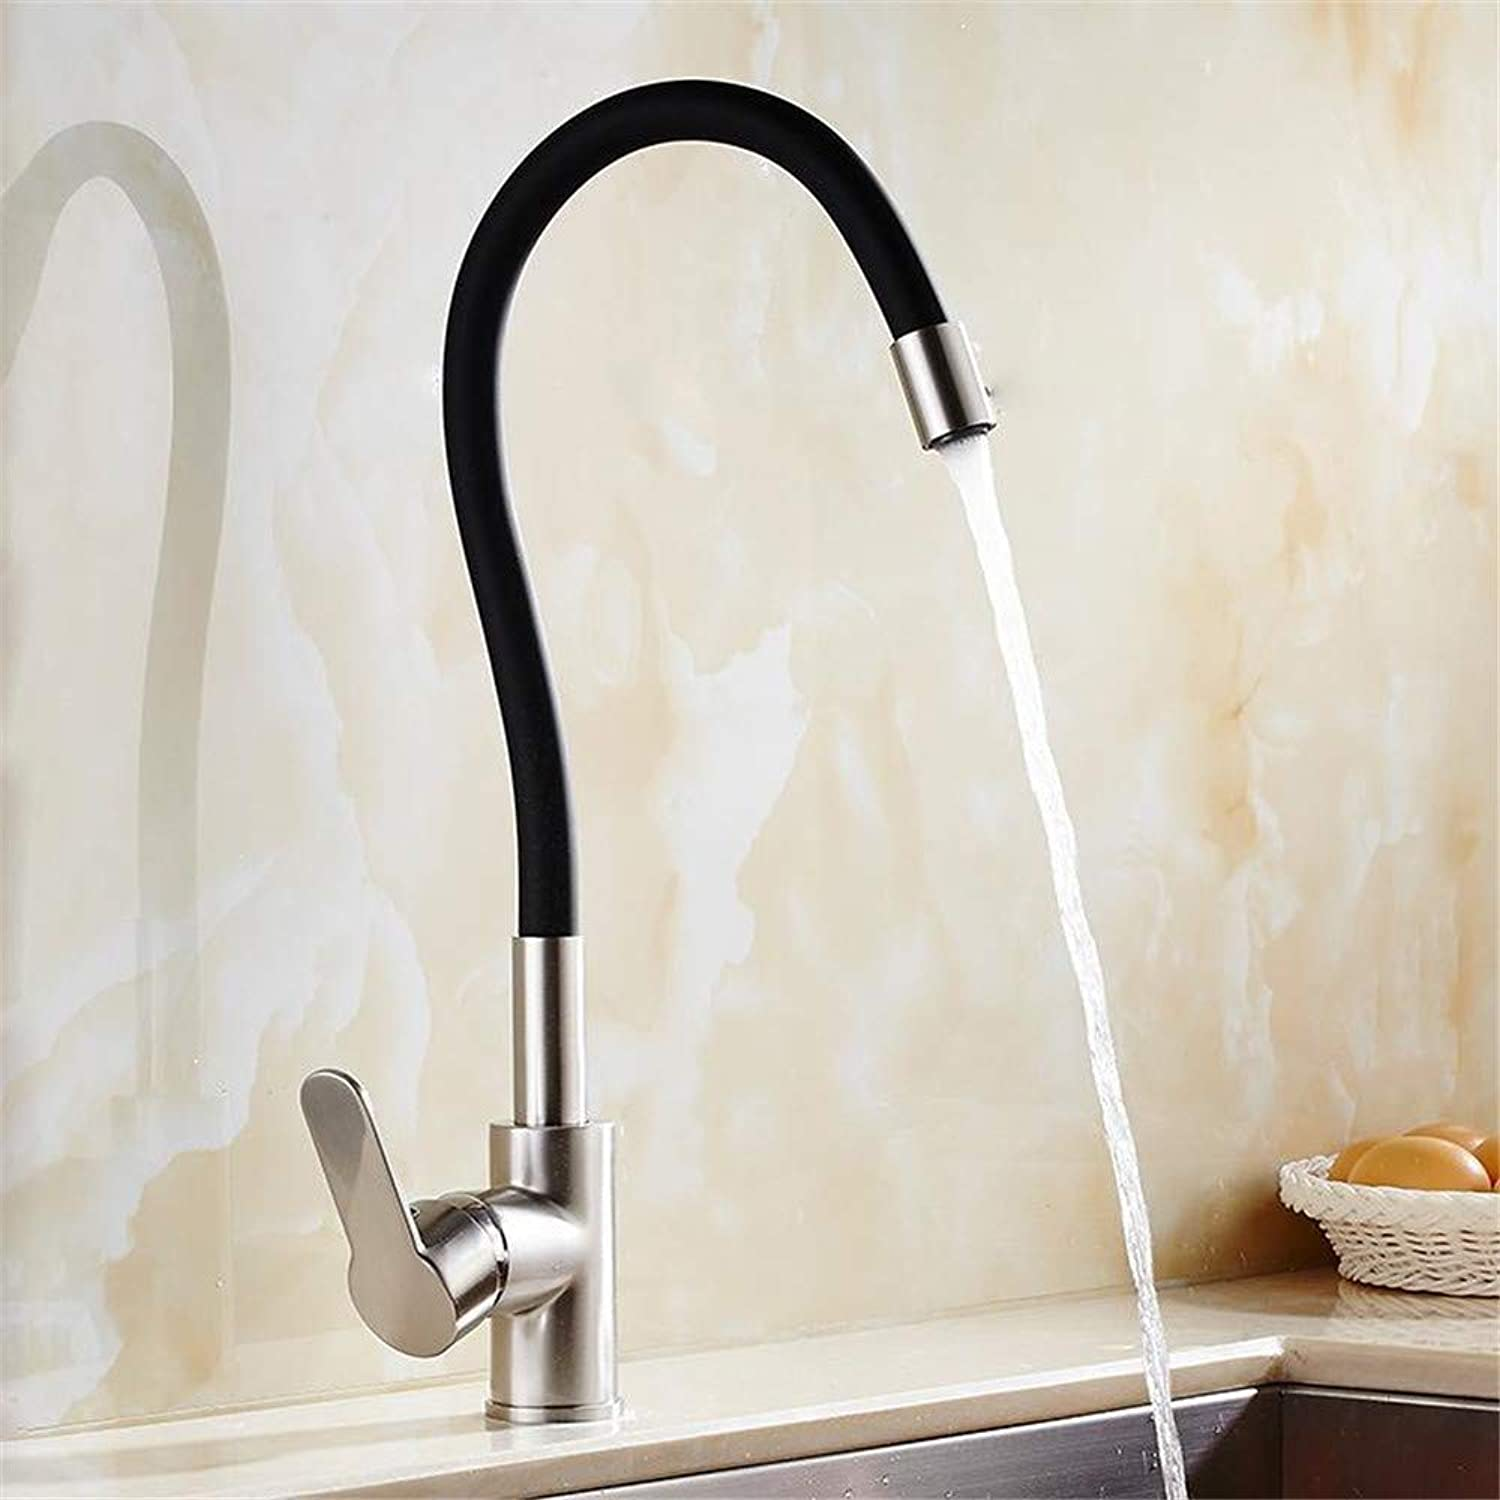 Oudan Contemporary Chrome Finish Solid Brass Spring Kitchen Faucet & redating Faucet & Mixer Taps Pull Down Kitchen Faucet Taps (color   -, Size   -)